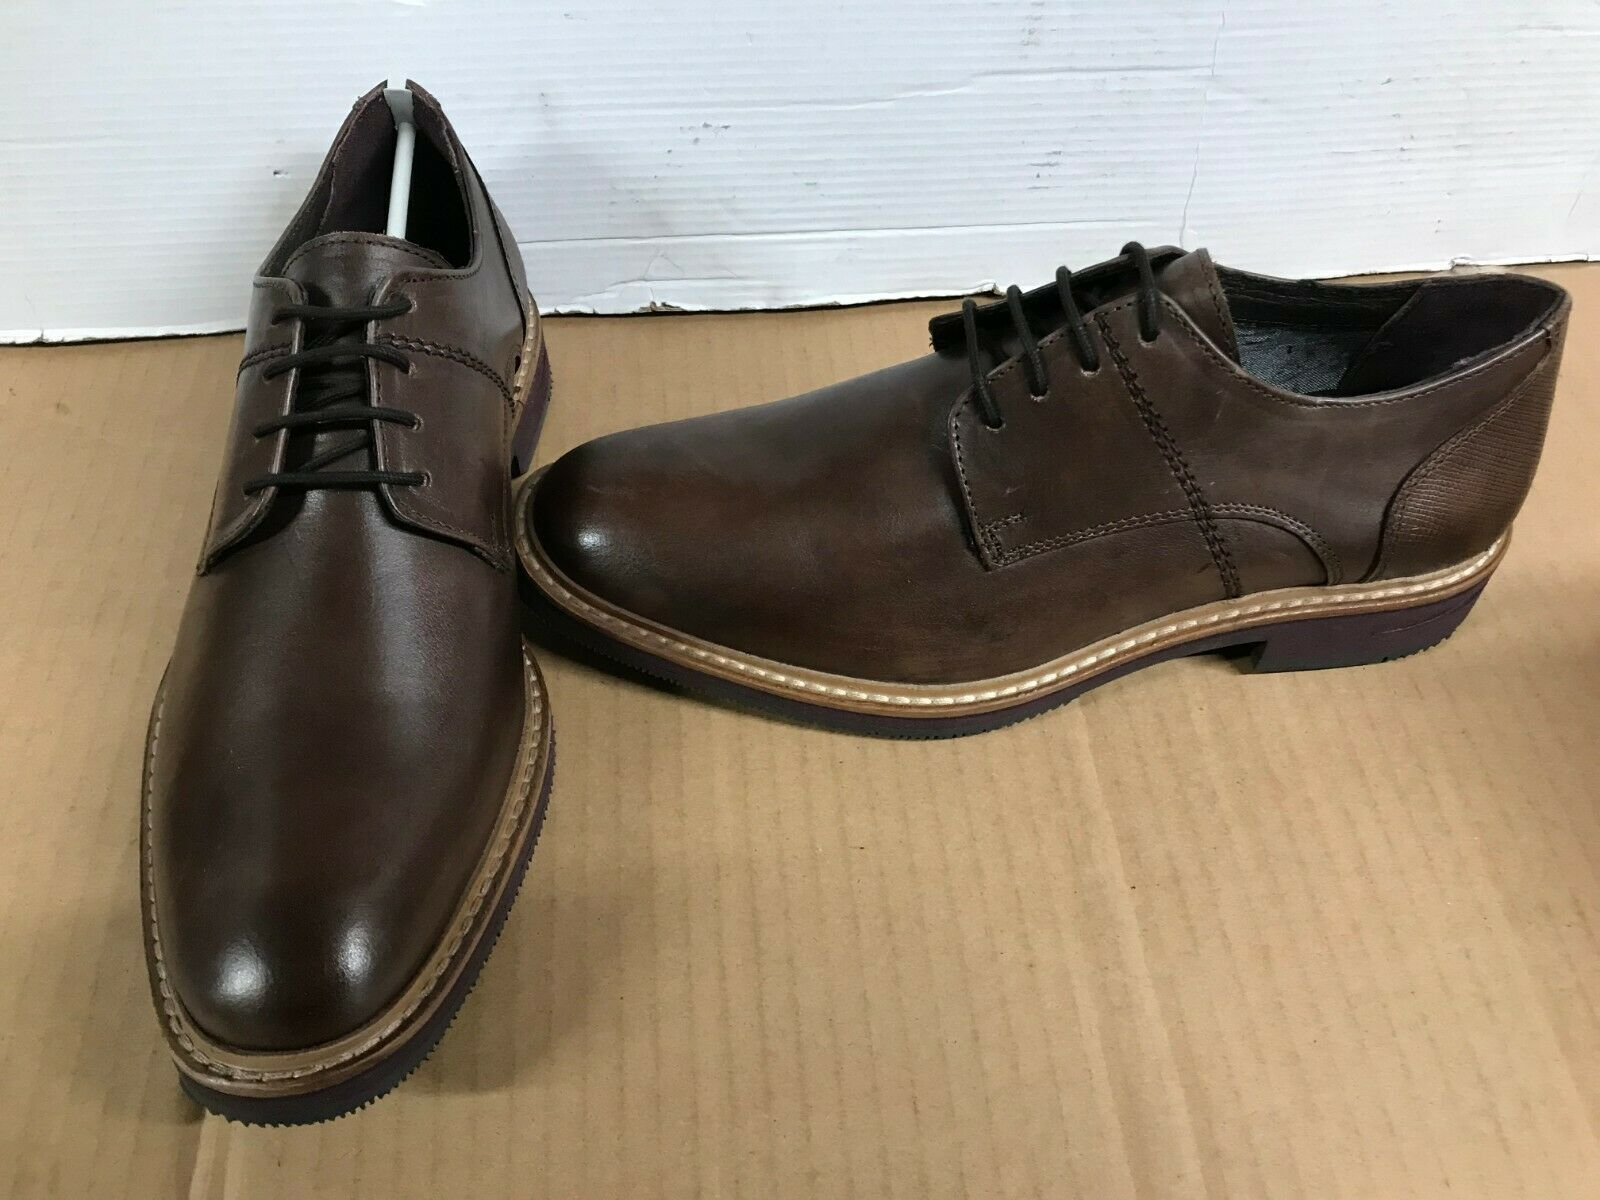 Hush Puppies POINTER Leather lace Up Derby shoes Bordo uk 7 eur 41 tan brown